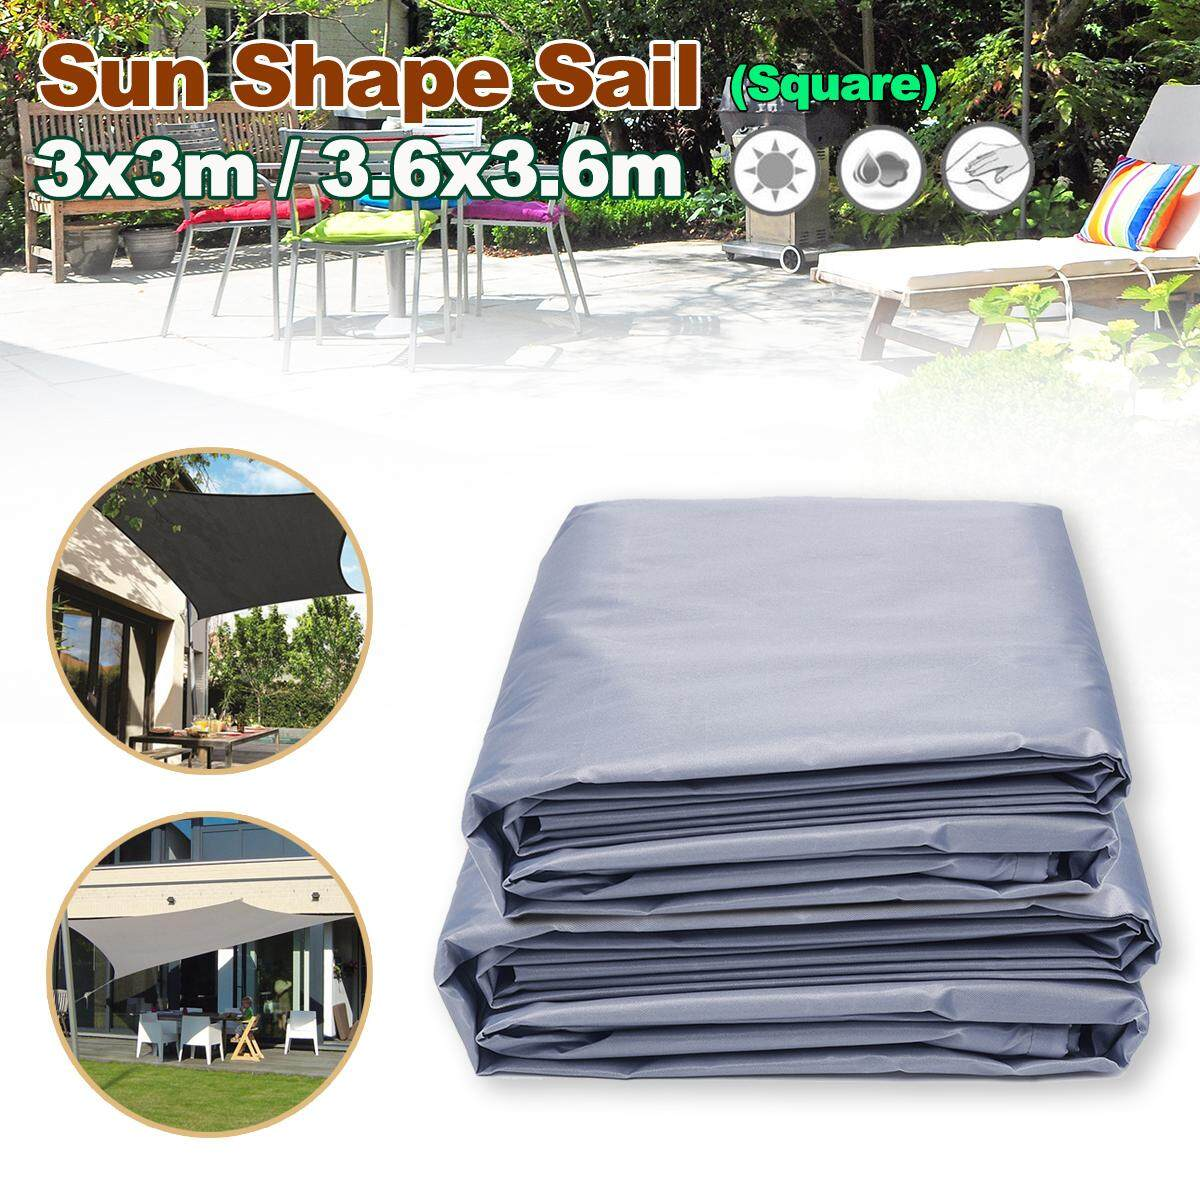 3x3m/3.6x3.6m Waterproof Dust Cover Cap Square Furniture Table Chair Outdoor - intl